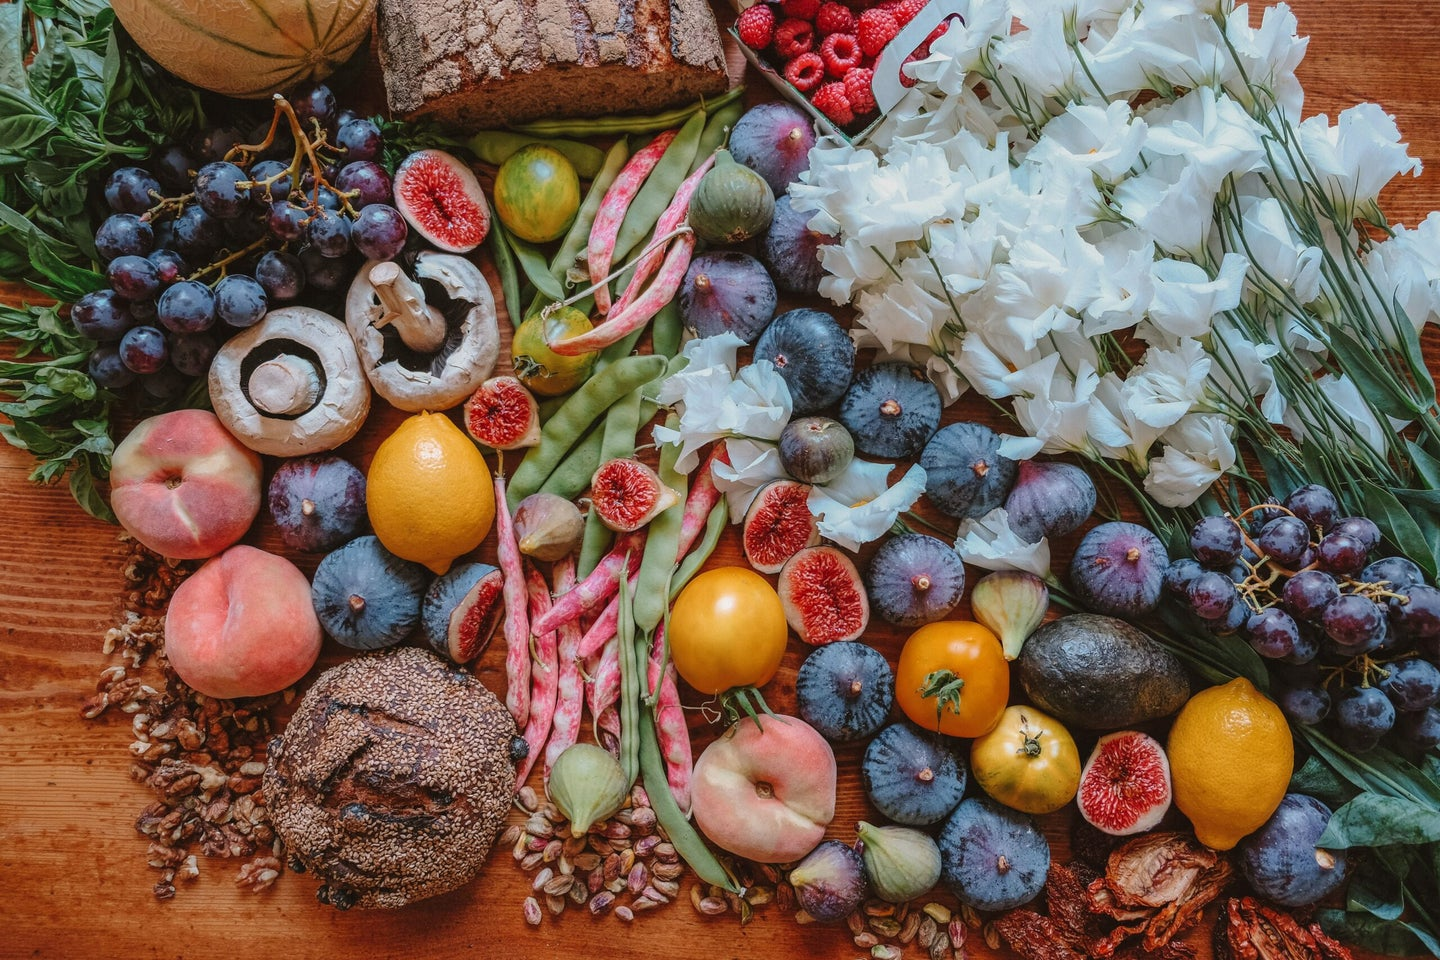 Assorted fruits, mushrooms, vegetables and other food spread out on table